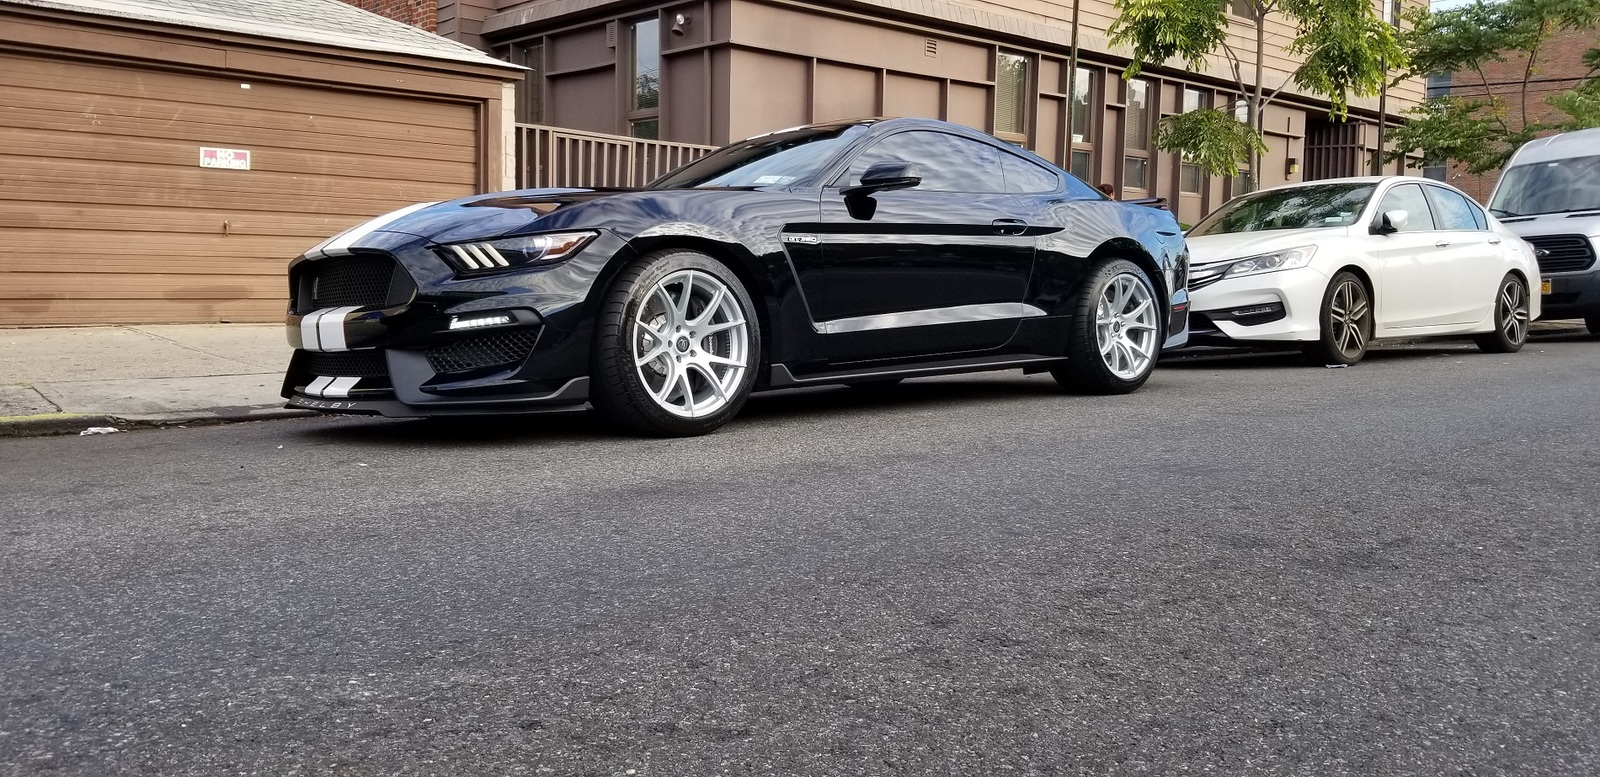 dow-black-ford-mustang-shelby-gt350-forgestar-cf5v-brilliant-silver-concave-rotory-forged-wheels.jpg